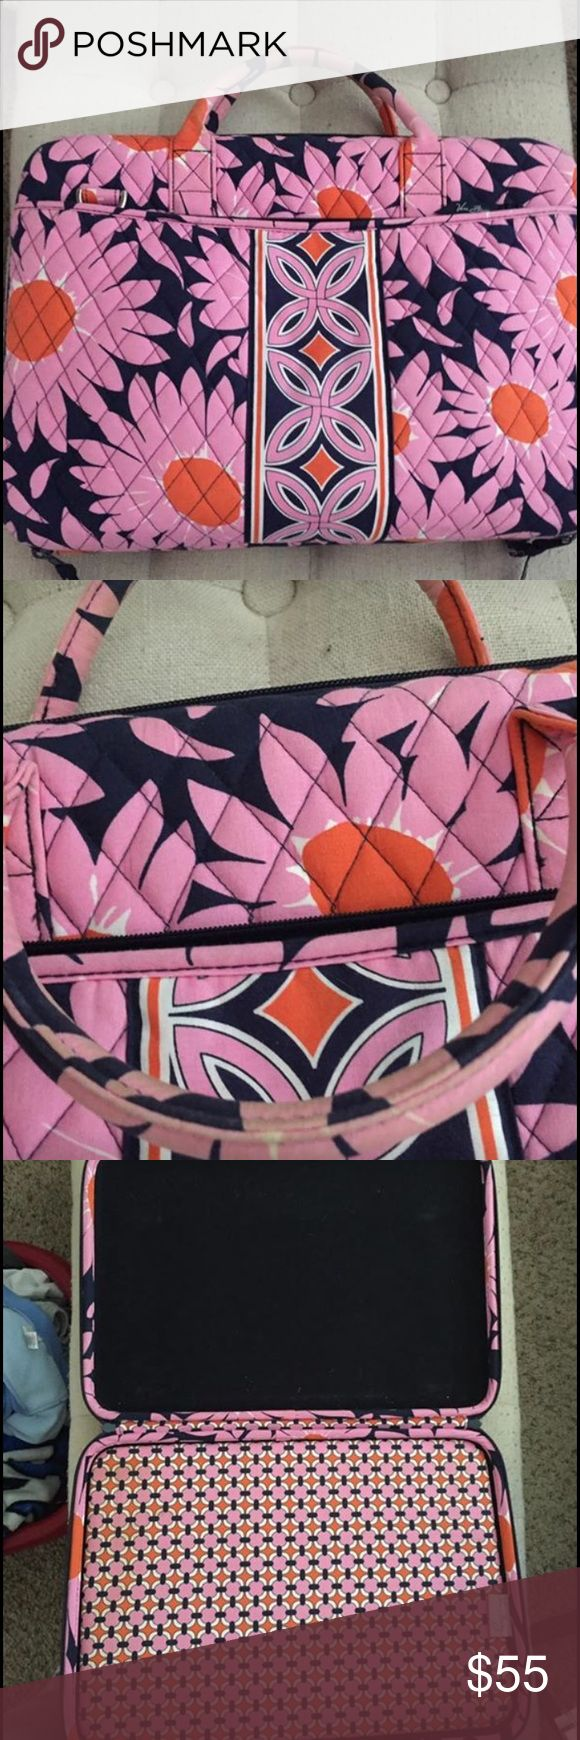 Vera Bradley laptop case Holds 16in. Computer comes with shoulder strap. The handles show a bit of dirt but nothing major Vera Bradley Accessories Laptop Cases